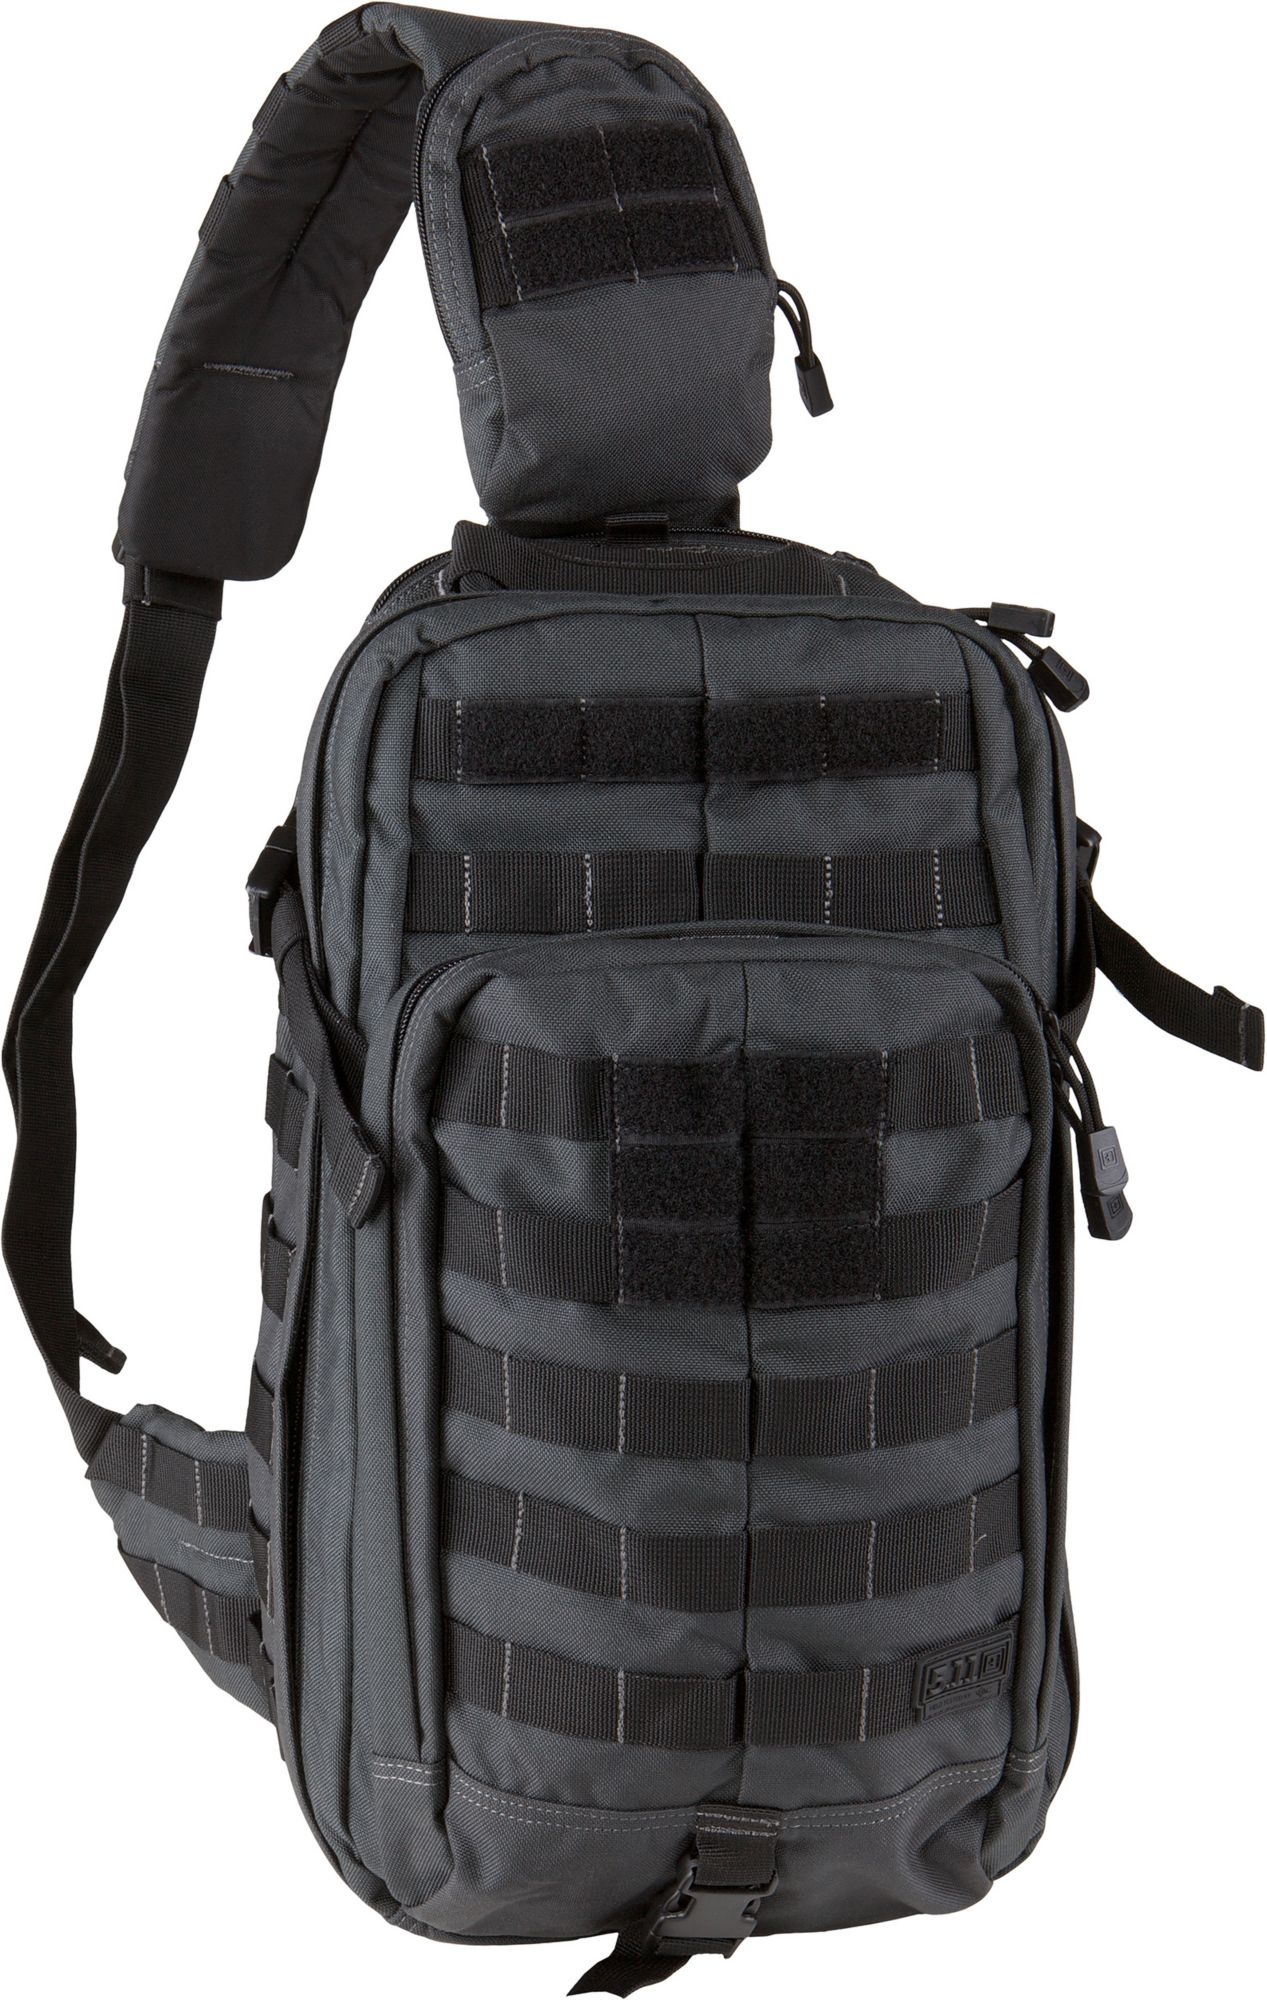 5.11 Tactical RUSH MOAB 10 Go Bag, Men's, Black